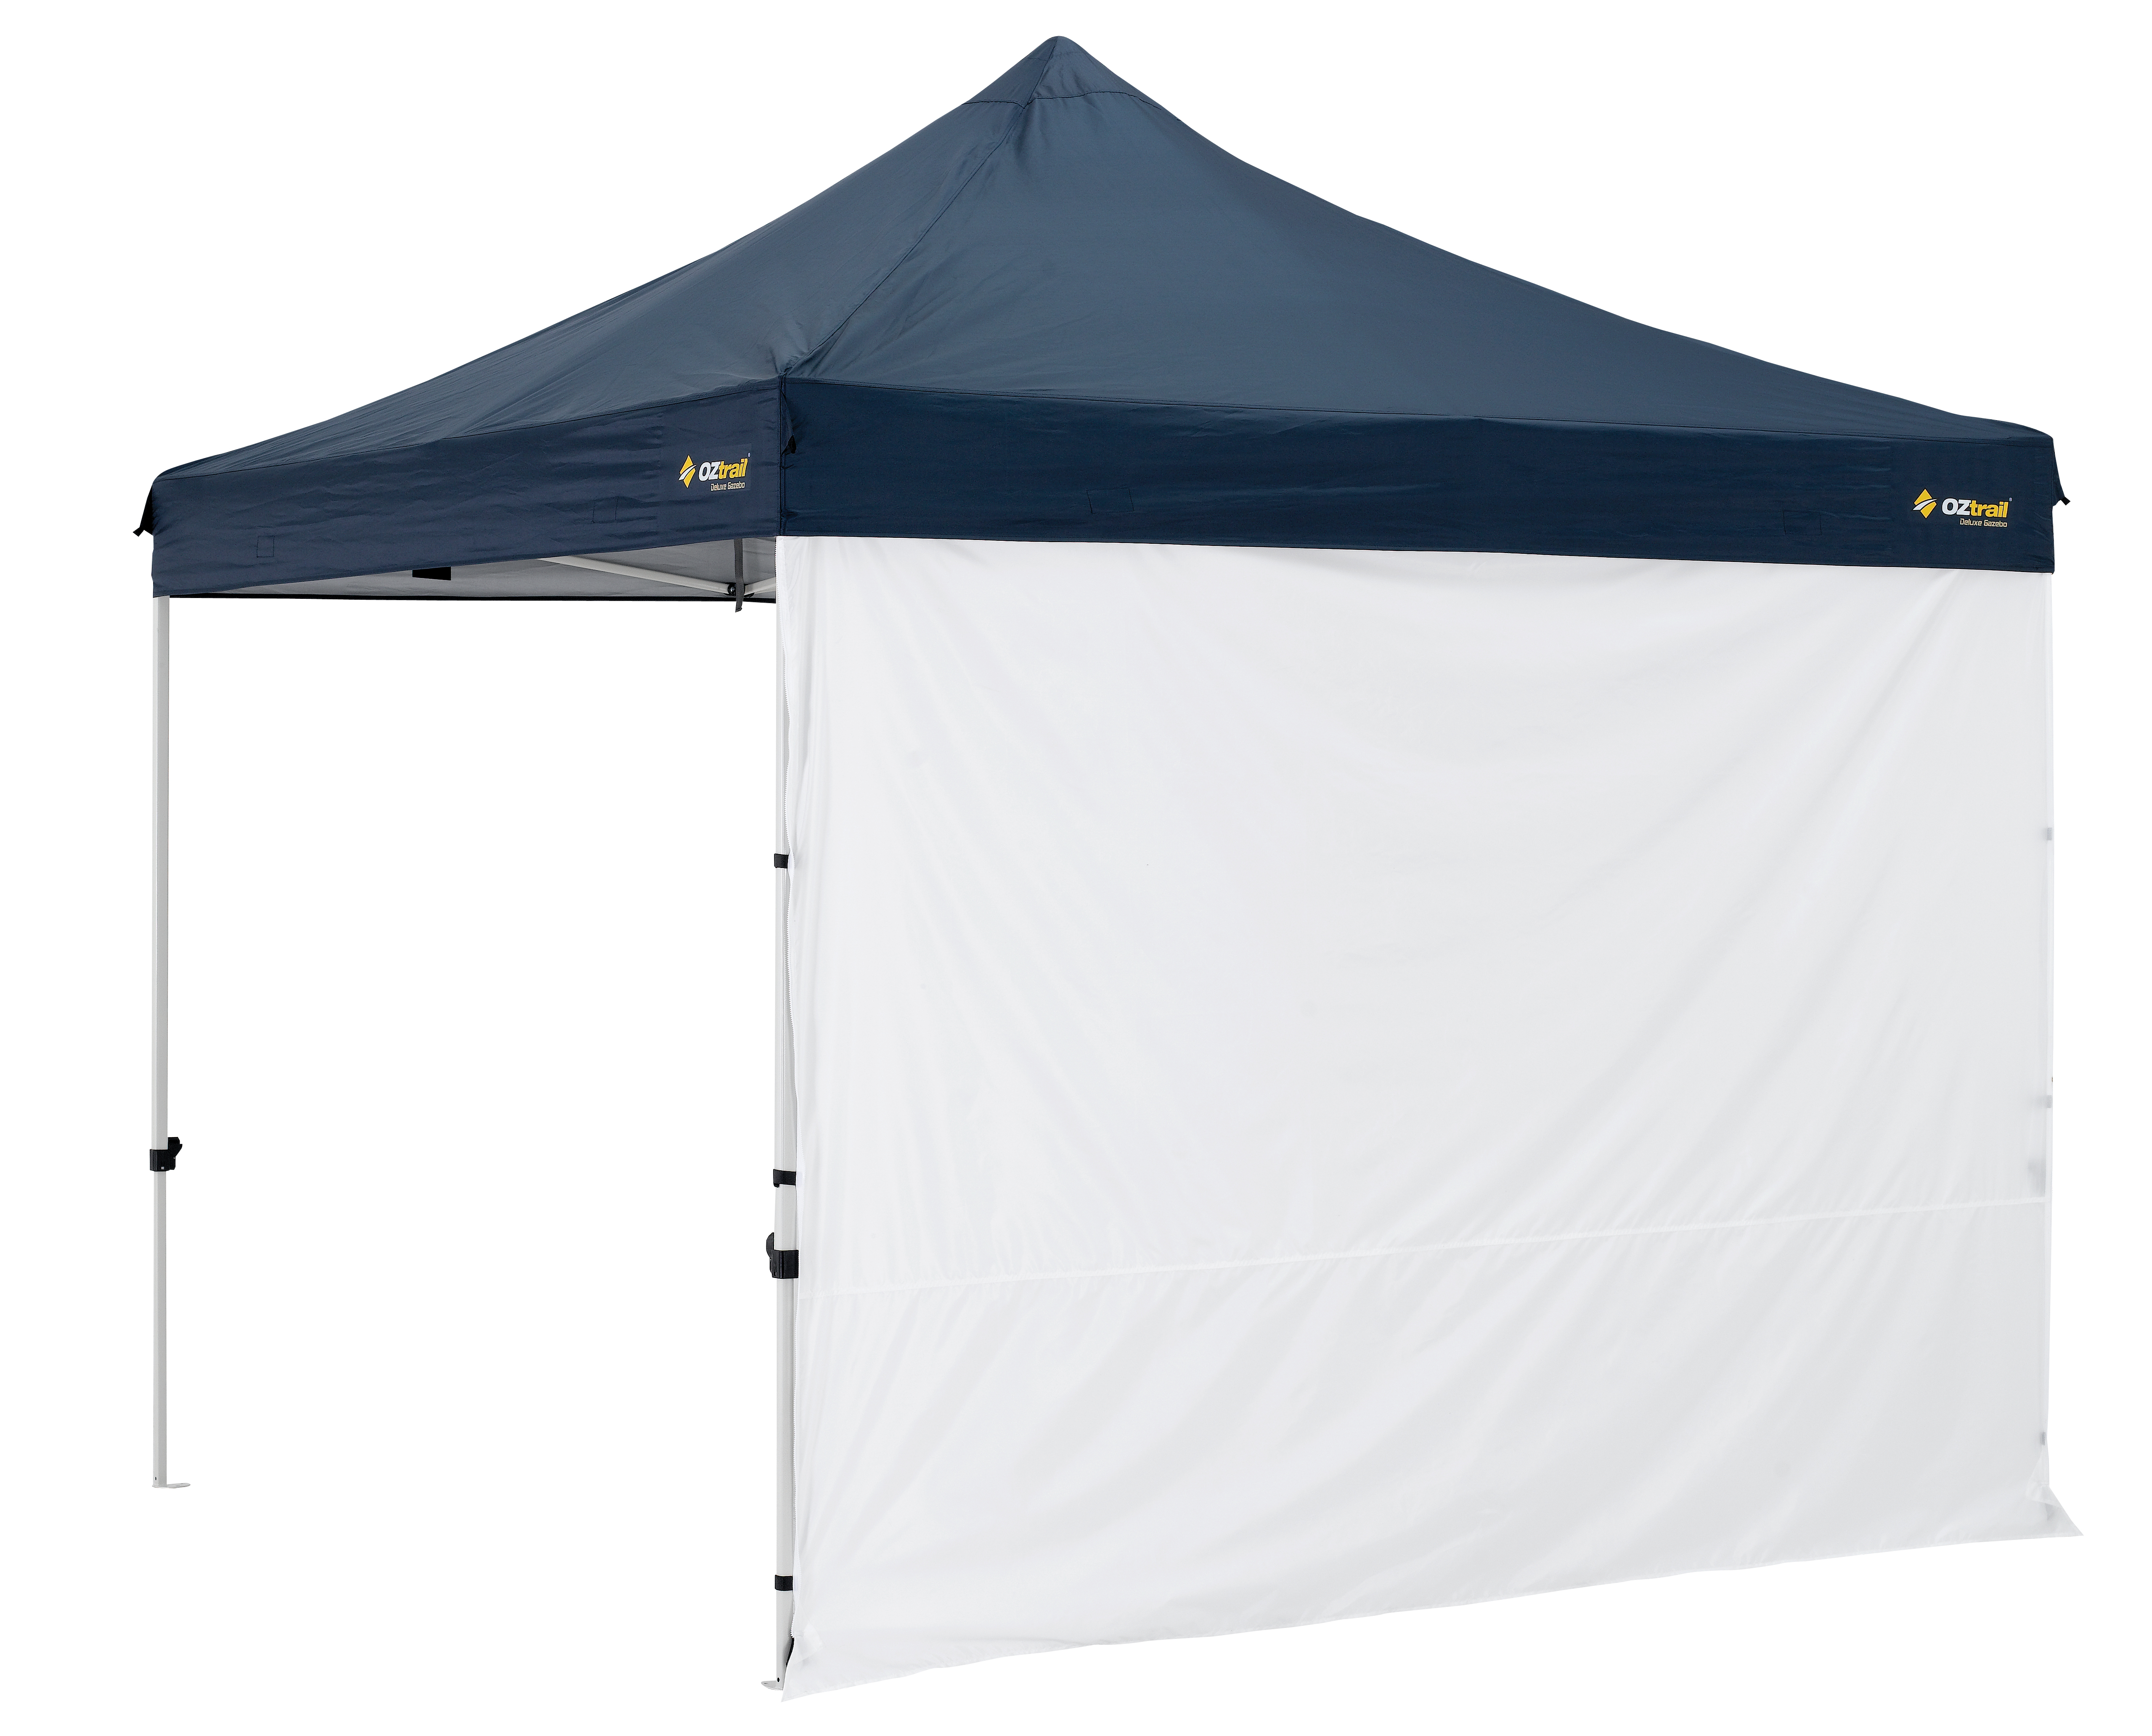 2.4m Compact Solid Wall  sc 1 st  Getaway Outdoors & Parts and Accessories | GETAWAY OUTDOORS